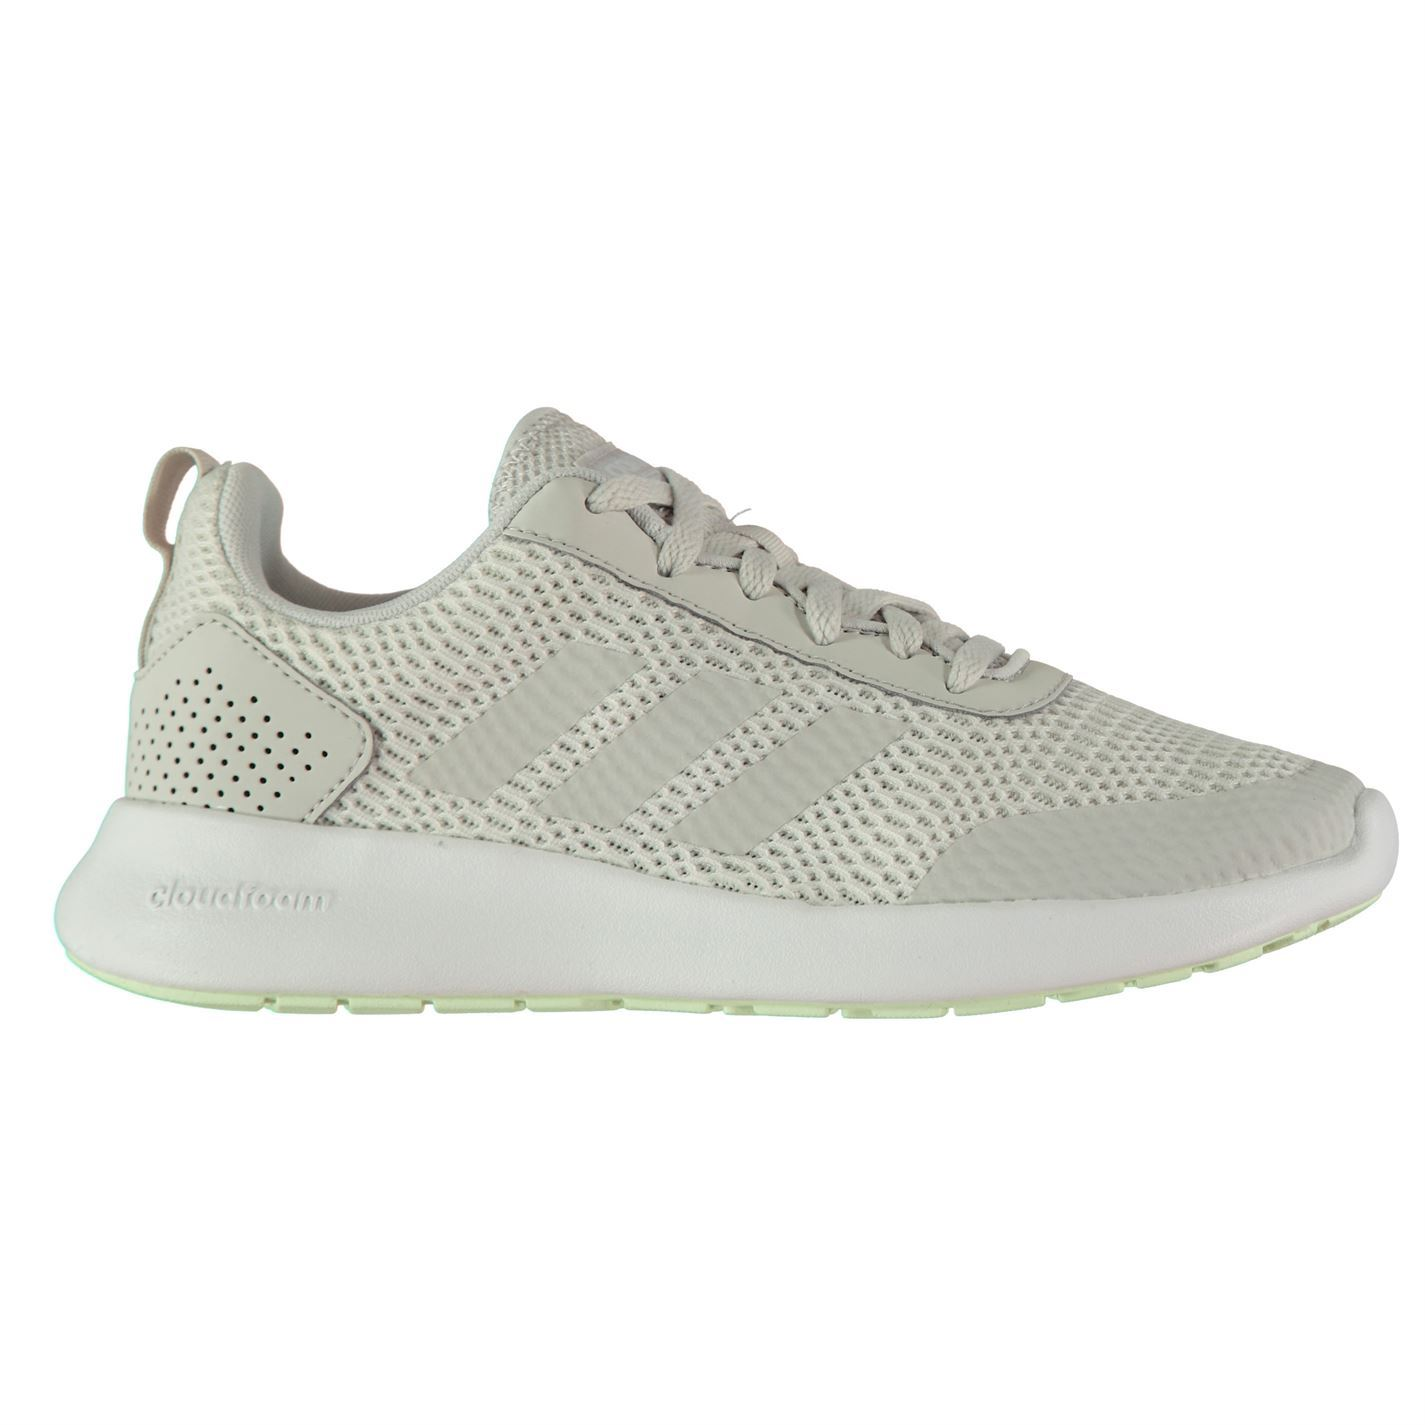 newest 9ac27 63162 ... adidas Cloudfoam Element Race Running Shoes Womens White Run Trainers  Sneakers ...